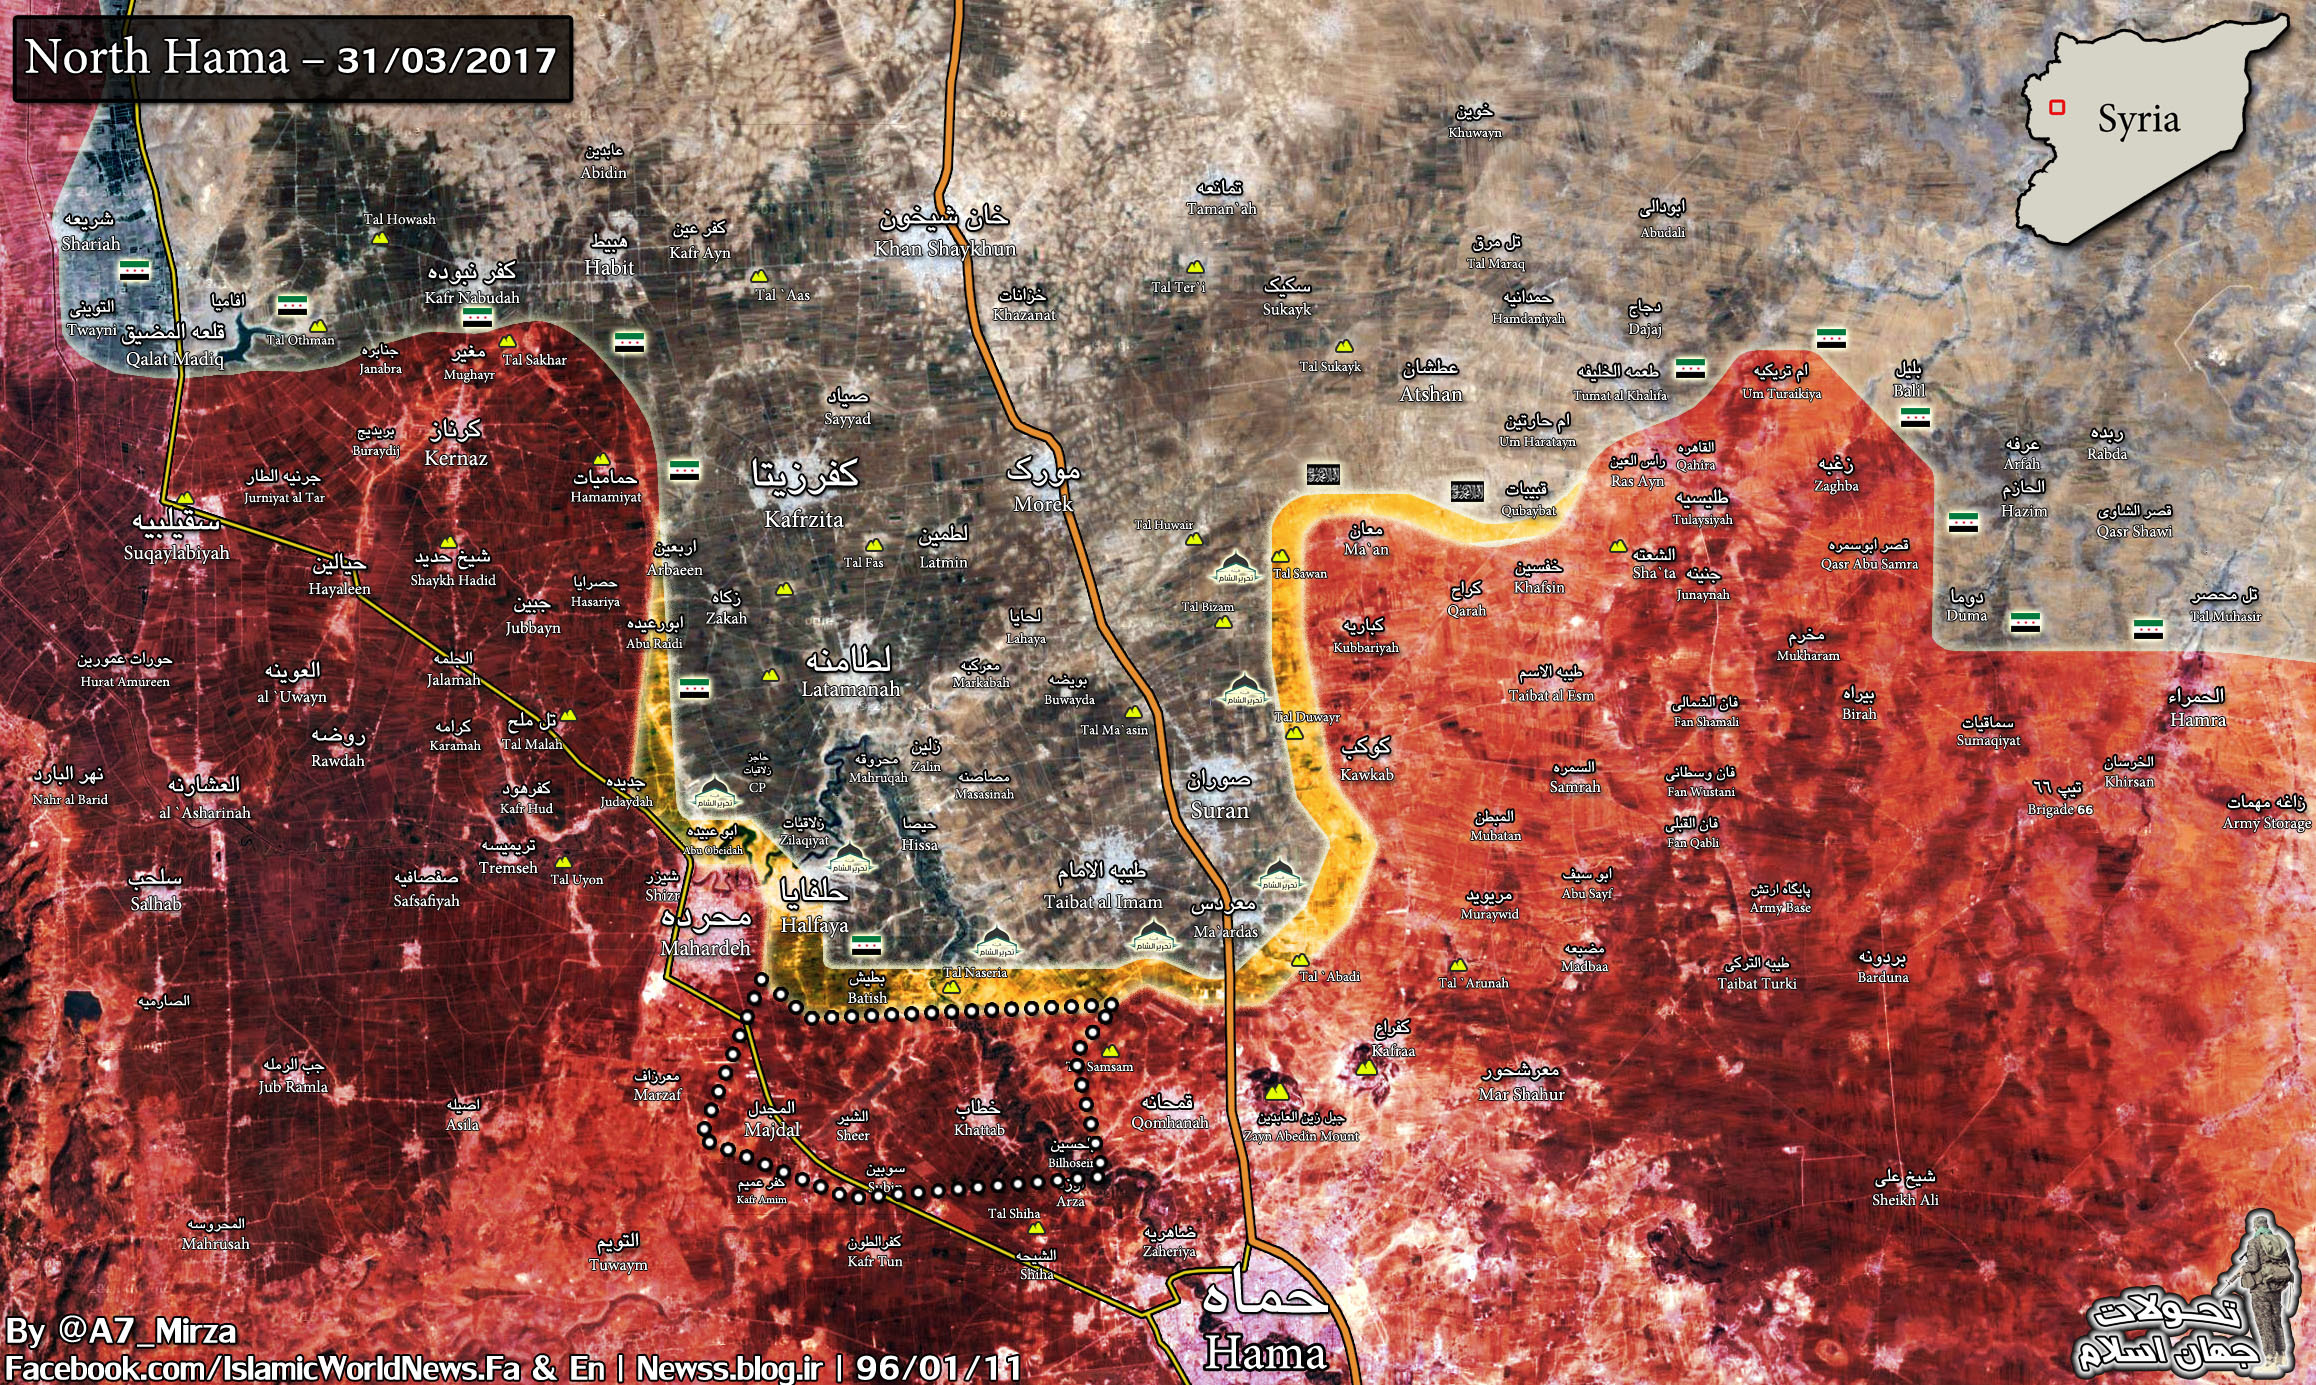 Major Breakthrough In Northern Hama. Syrian Army Retakes Large Areas From Militants